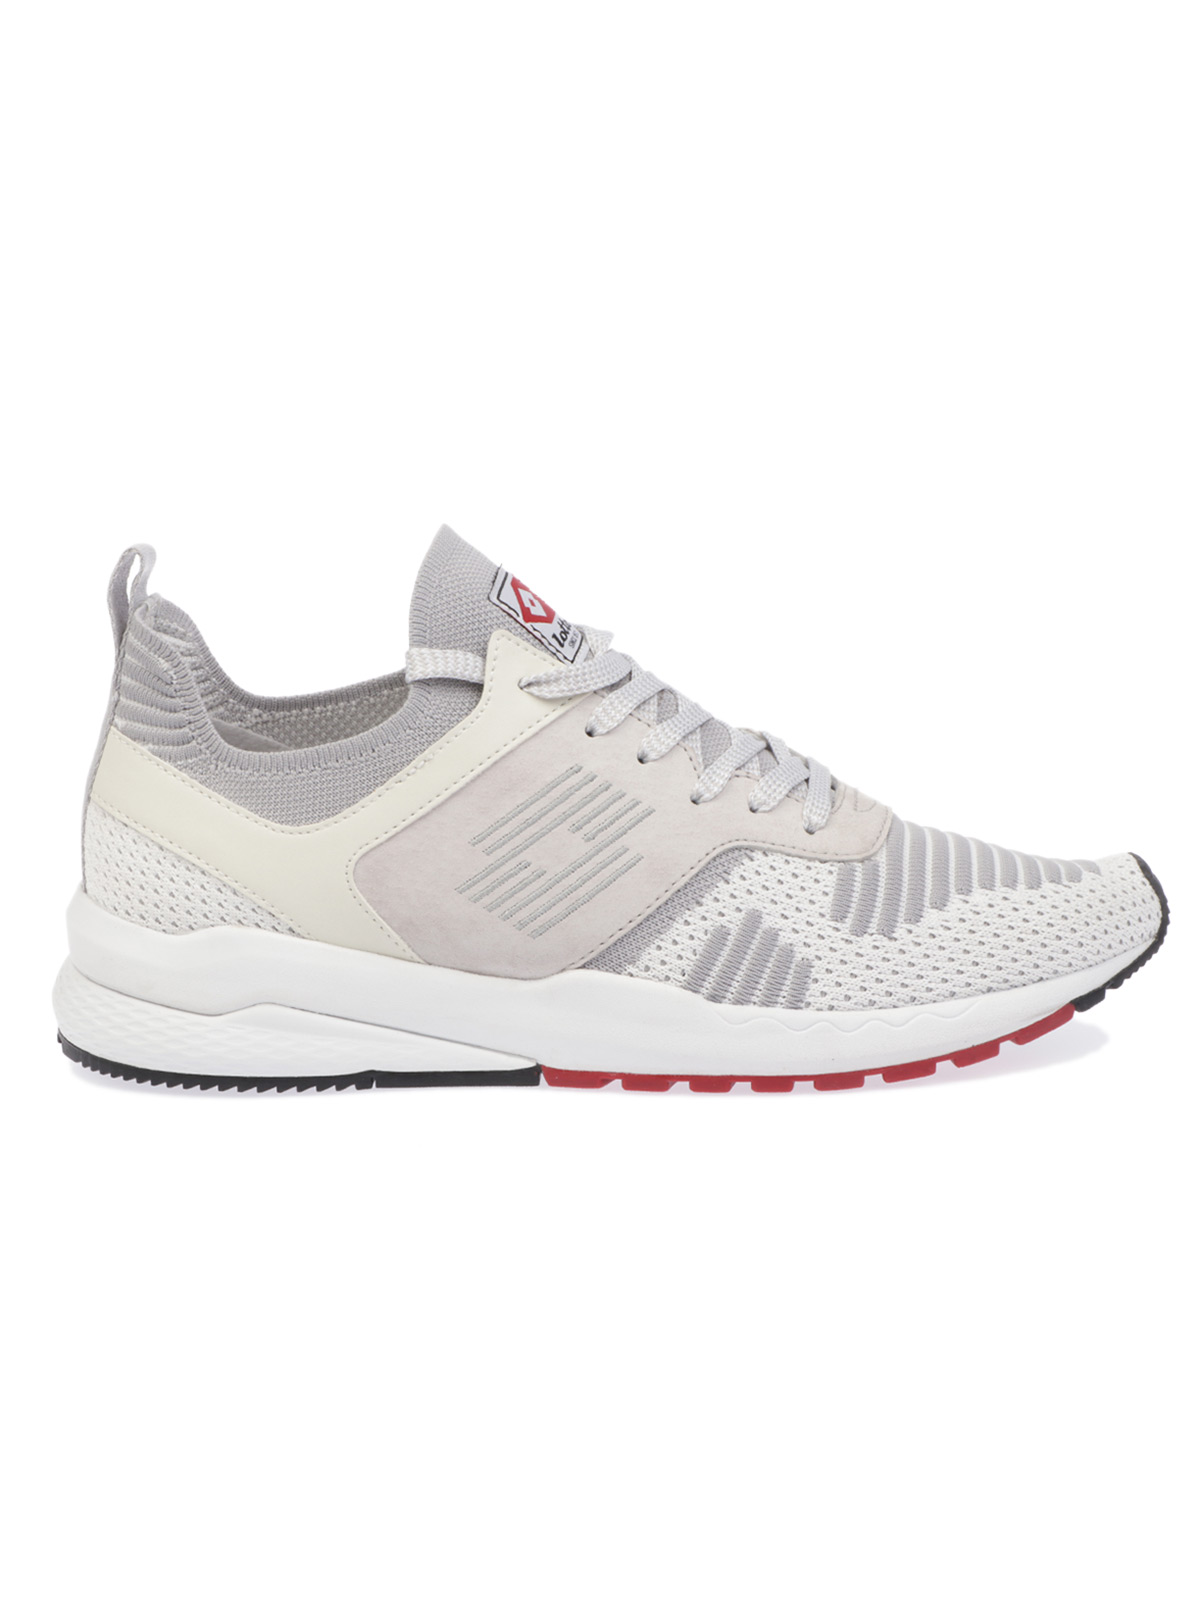 Picture of LOTTO LEGGENDA | Men's Marathon Knit Sneakers